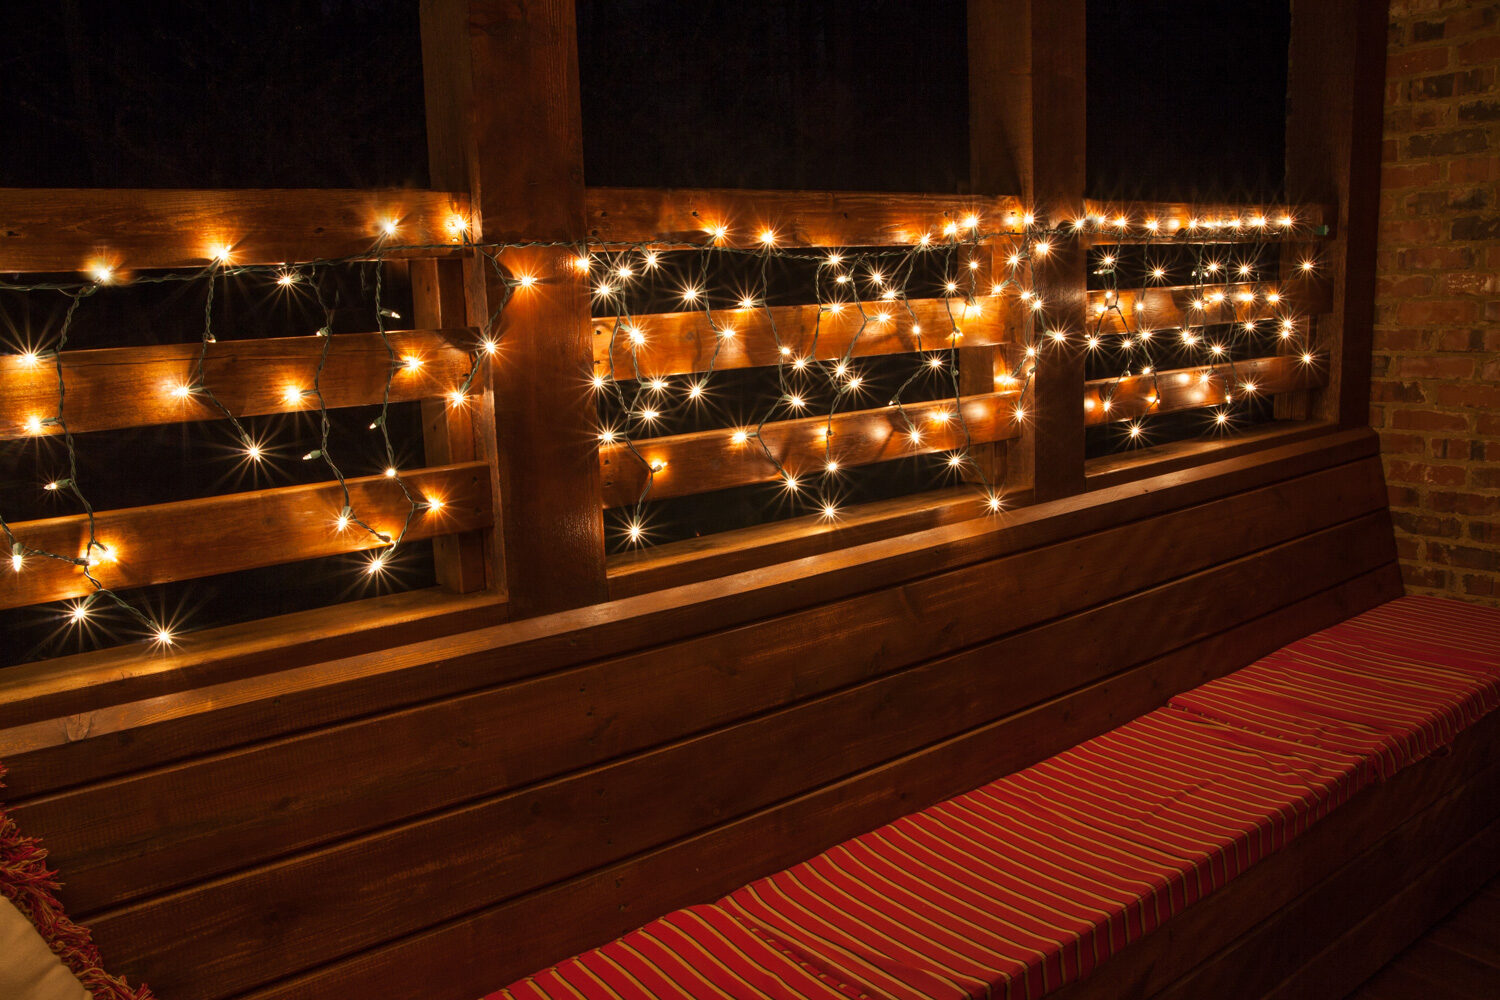 String Lights On Deck Railing : Deck Lighting Ideas with Brilliant Results! - Yard Envy